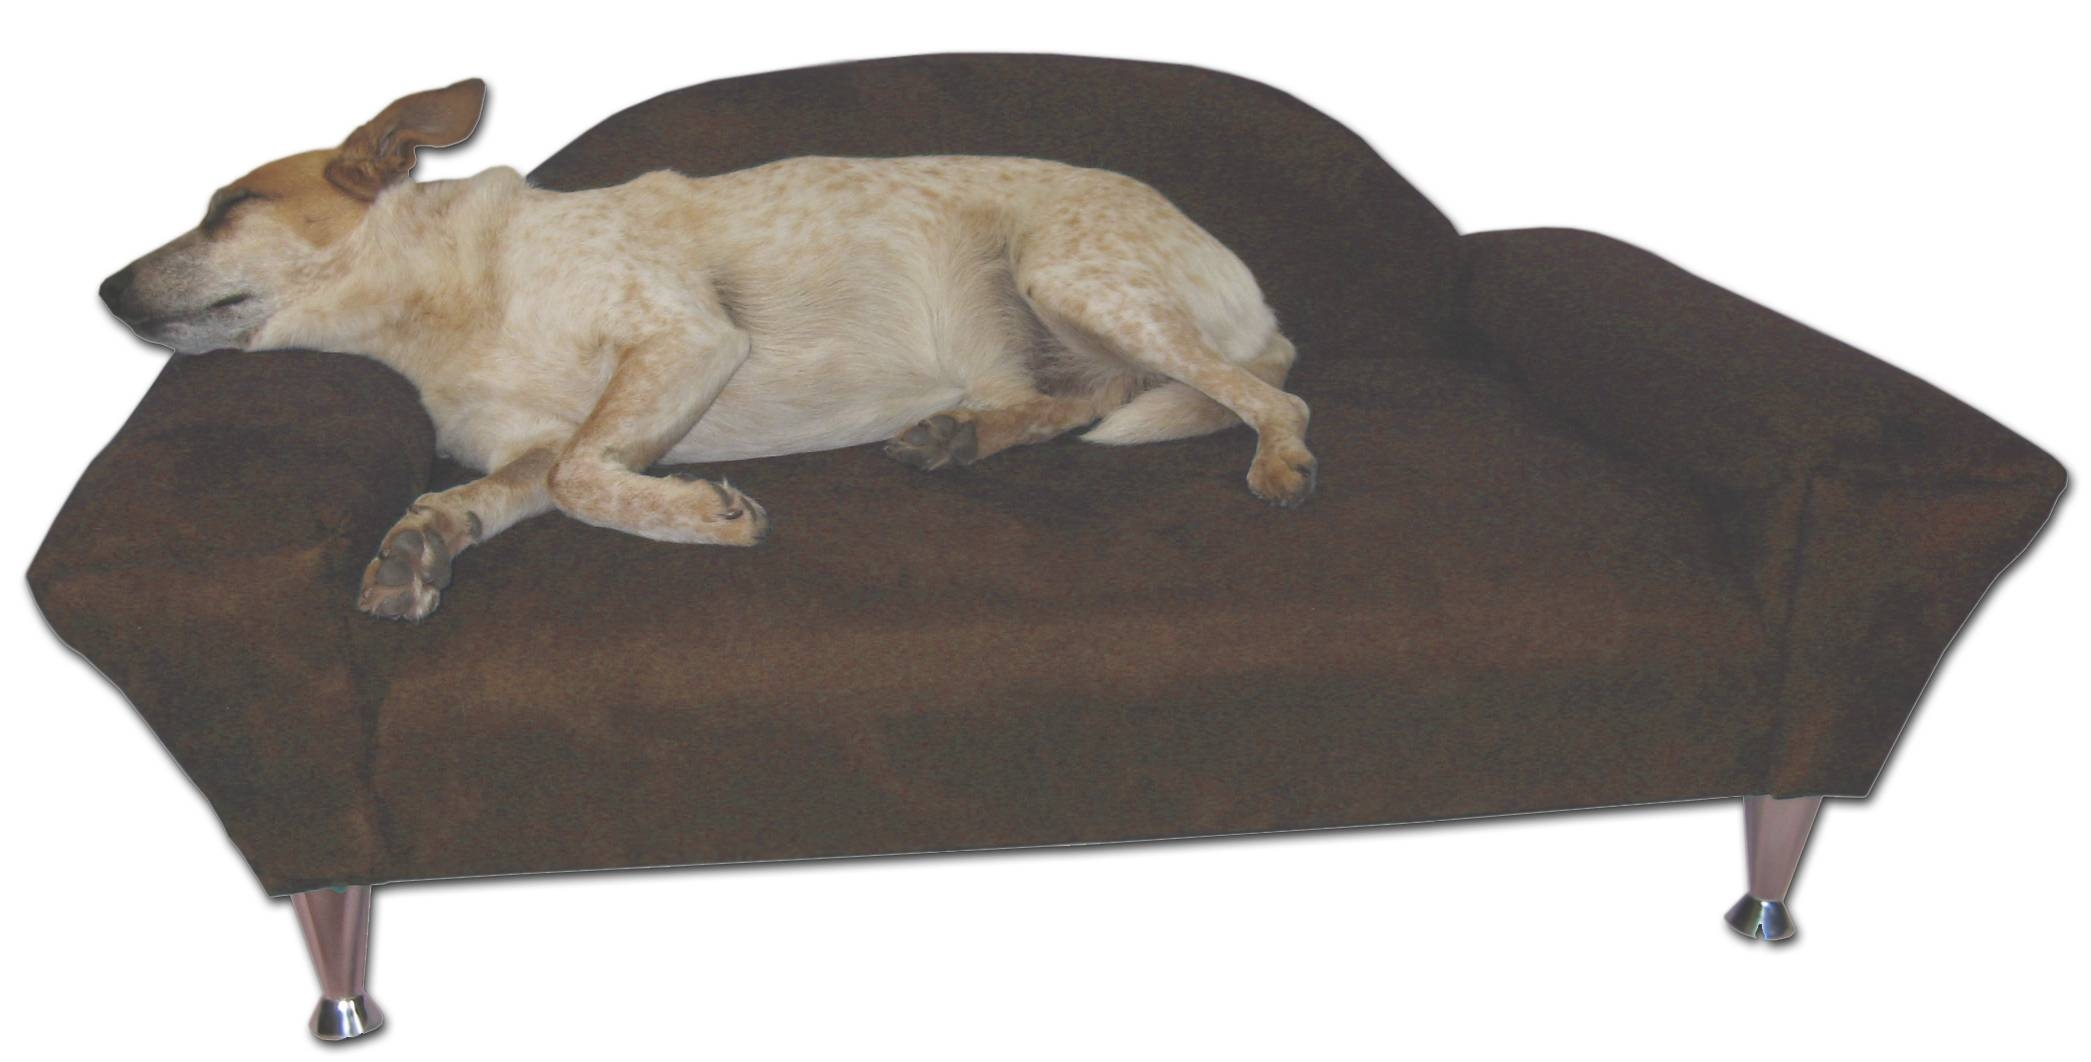 Dog Furniture - Pet Furniture - Dog Sofa - Dog Couch pertaining to Sofas For Dogs (Image 1 of 30)